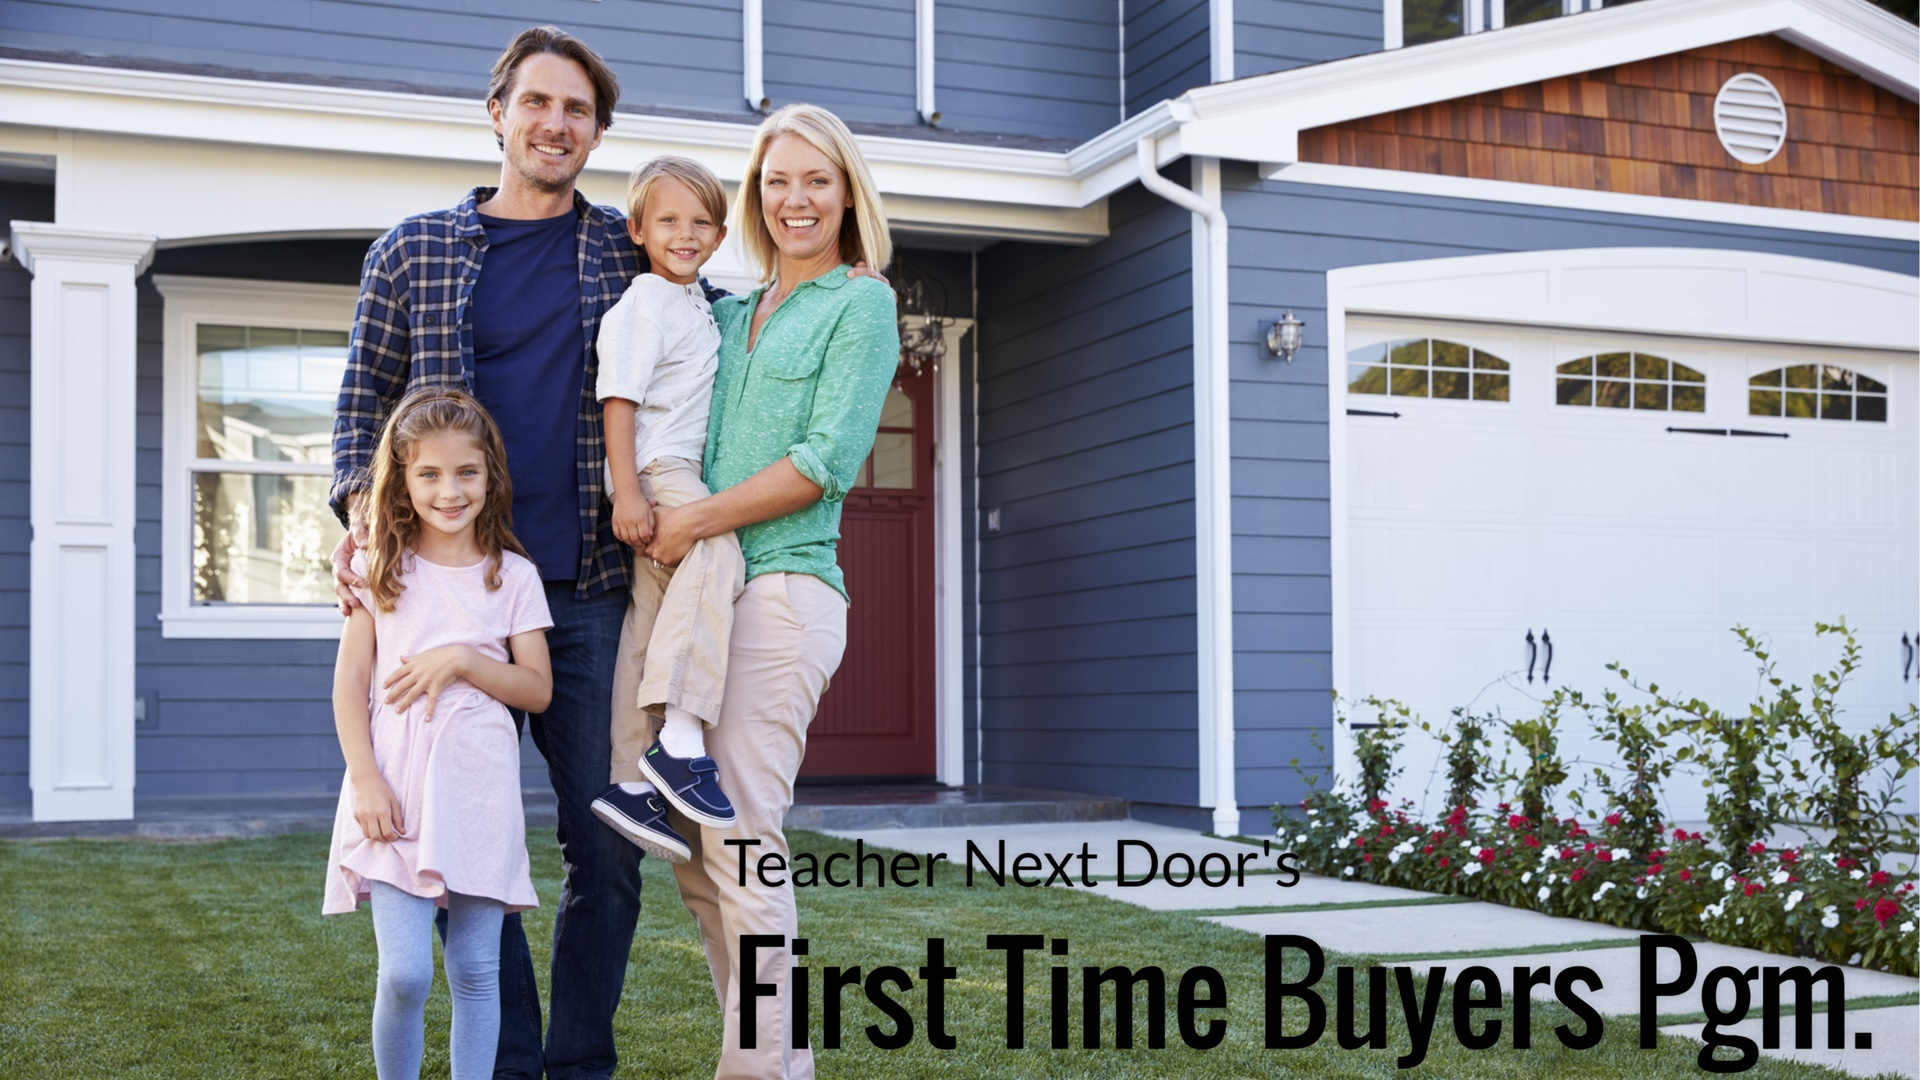 best ideas about time home buyers on home buying programs updated 11 2 18 25